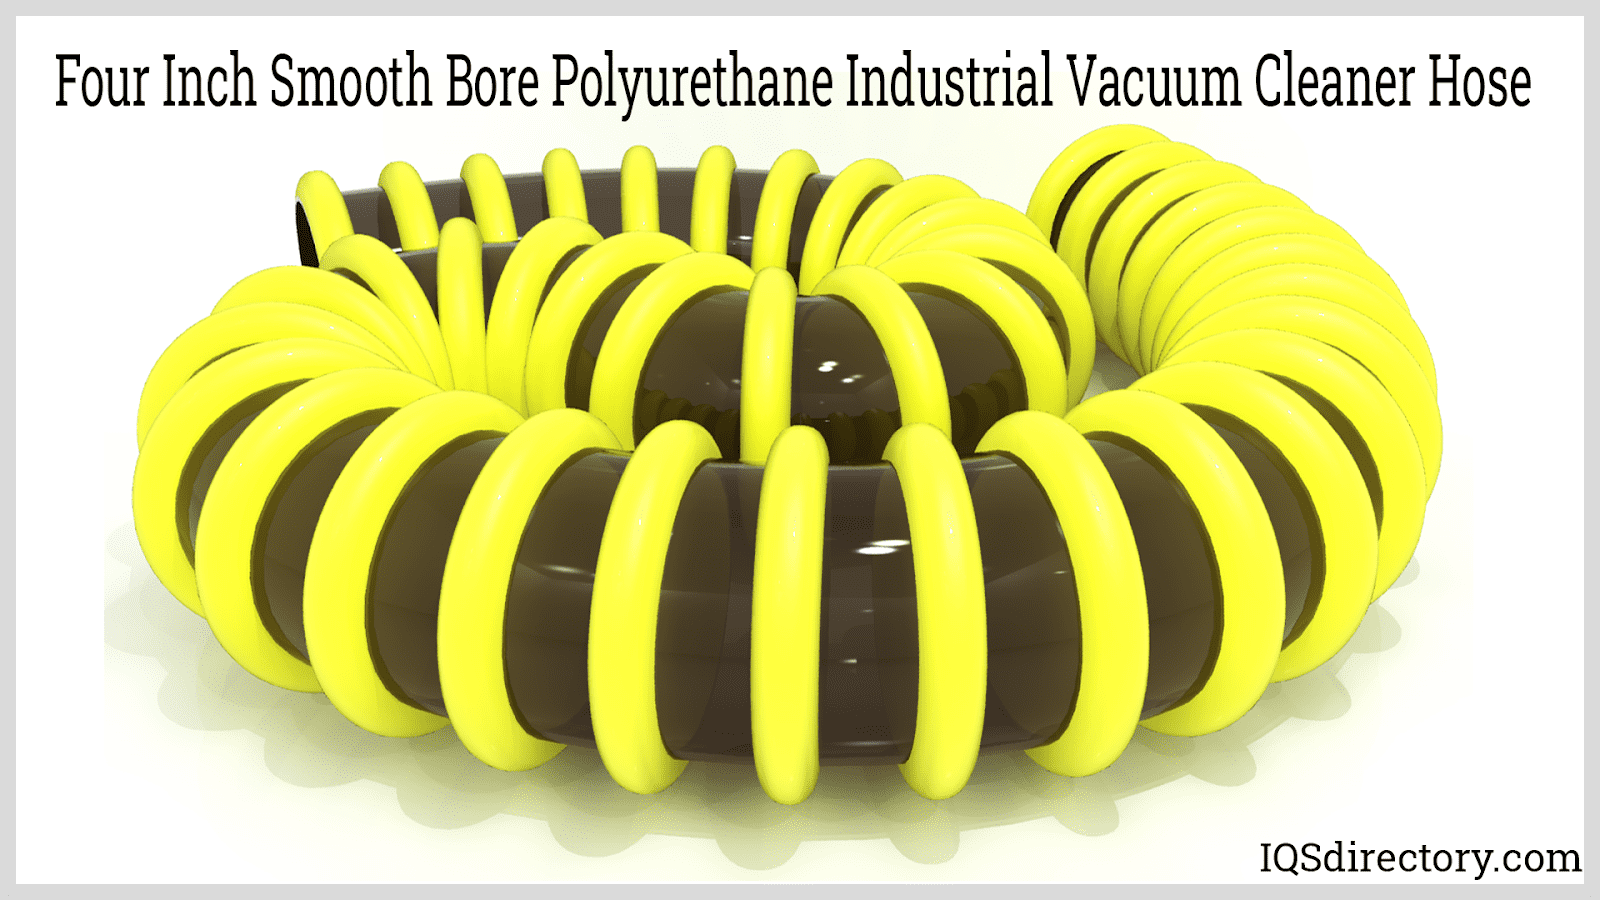 Four Inch Smooth Bore Polyurethane Industrial Vacuum Cleaner Hose